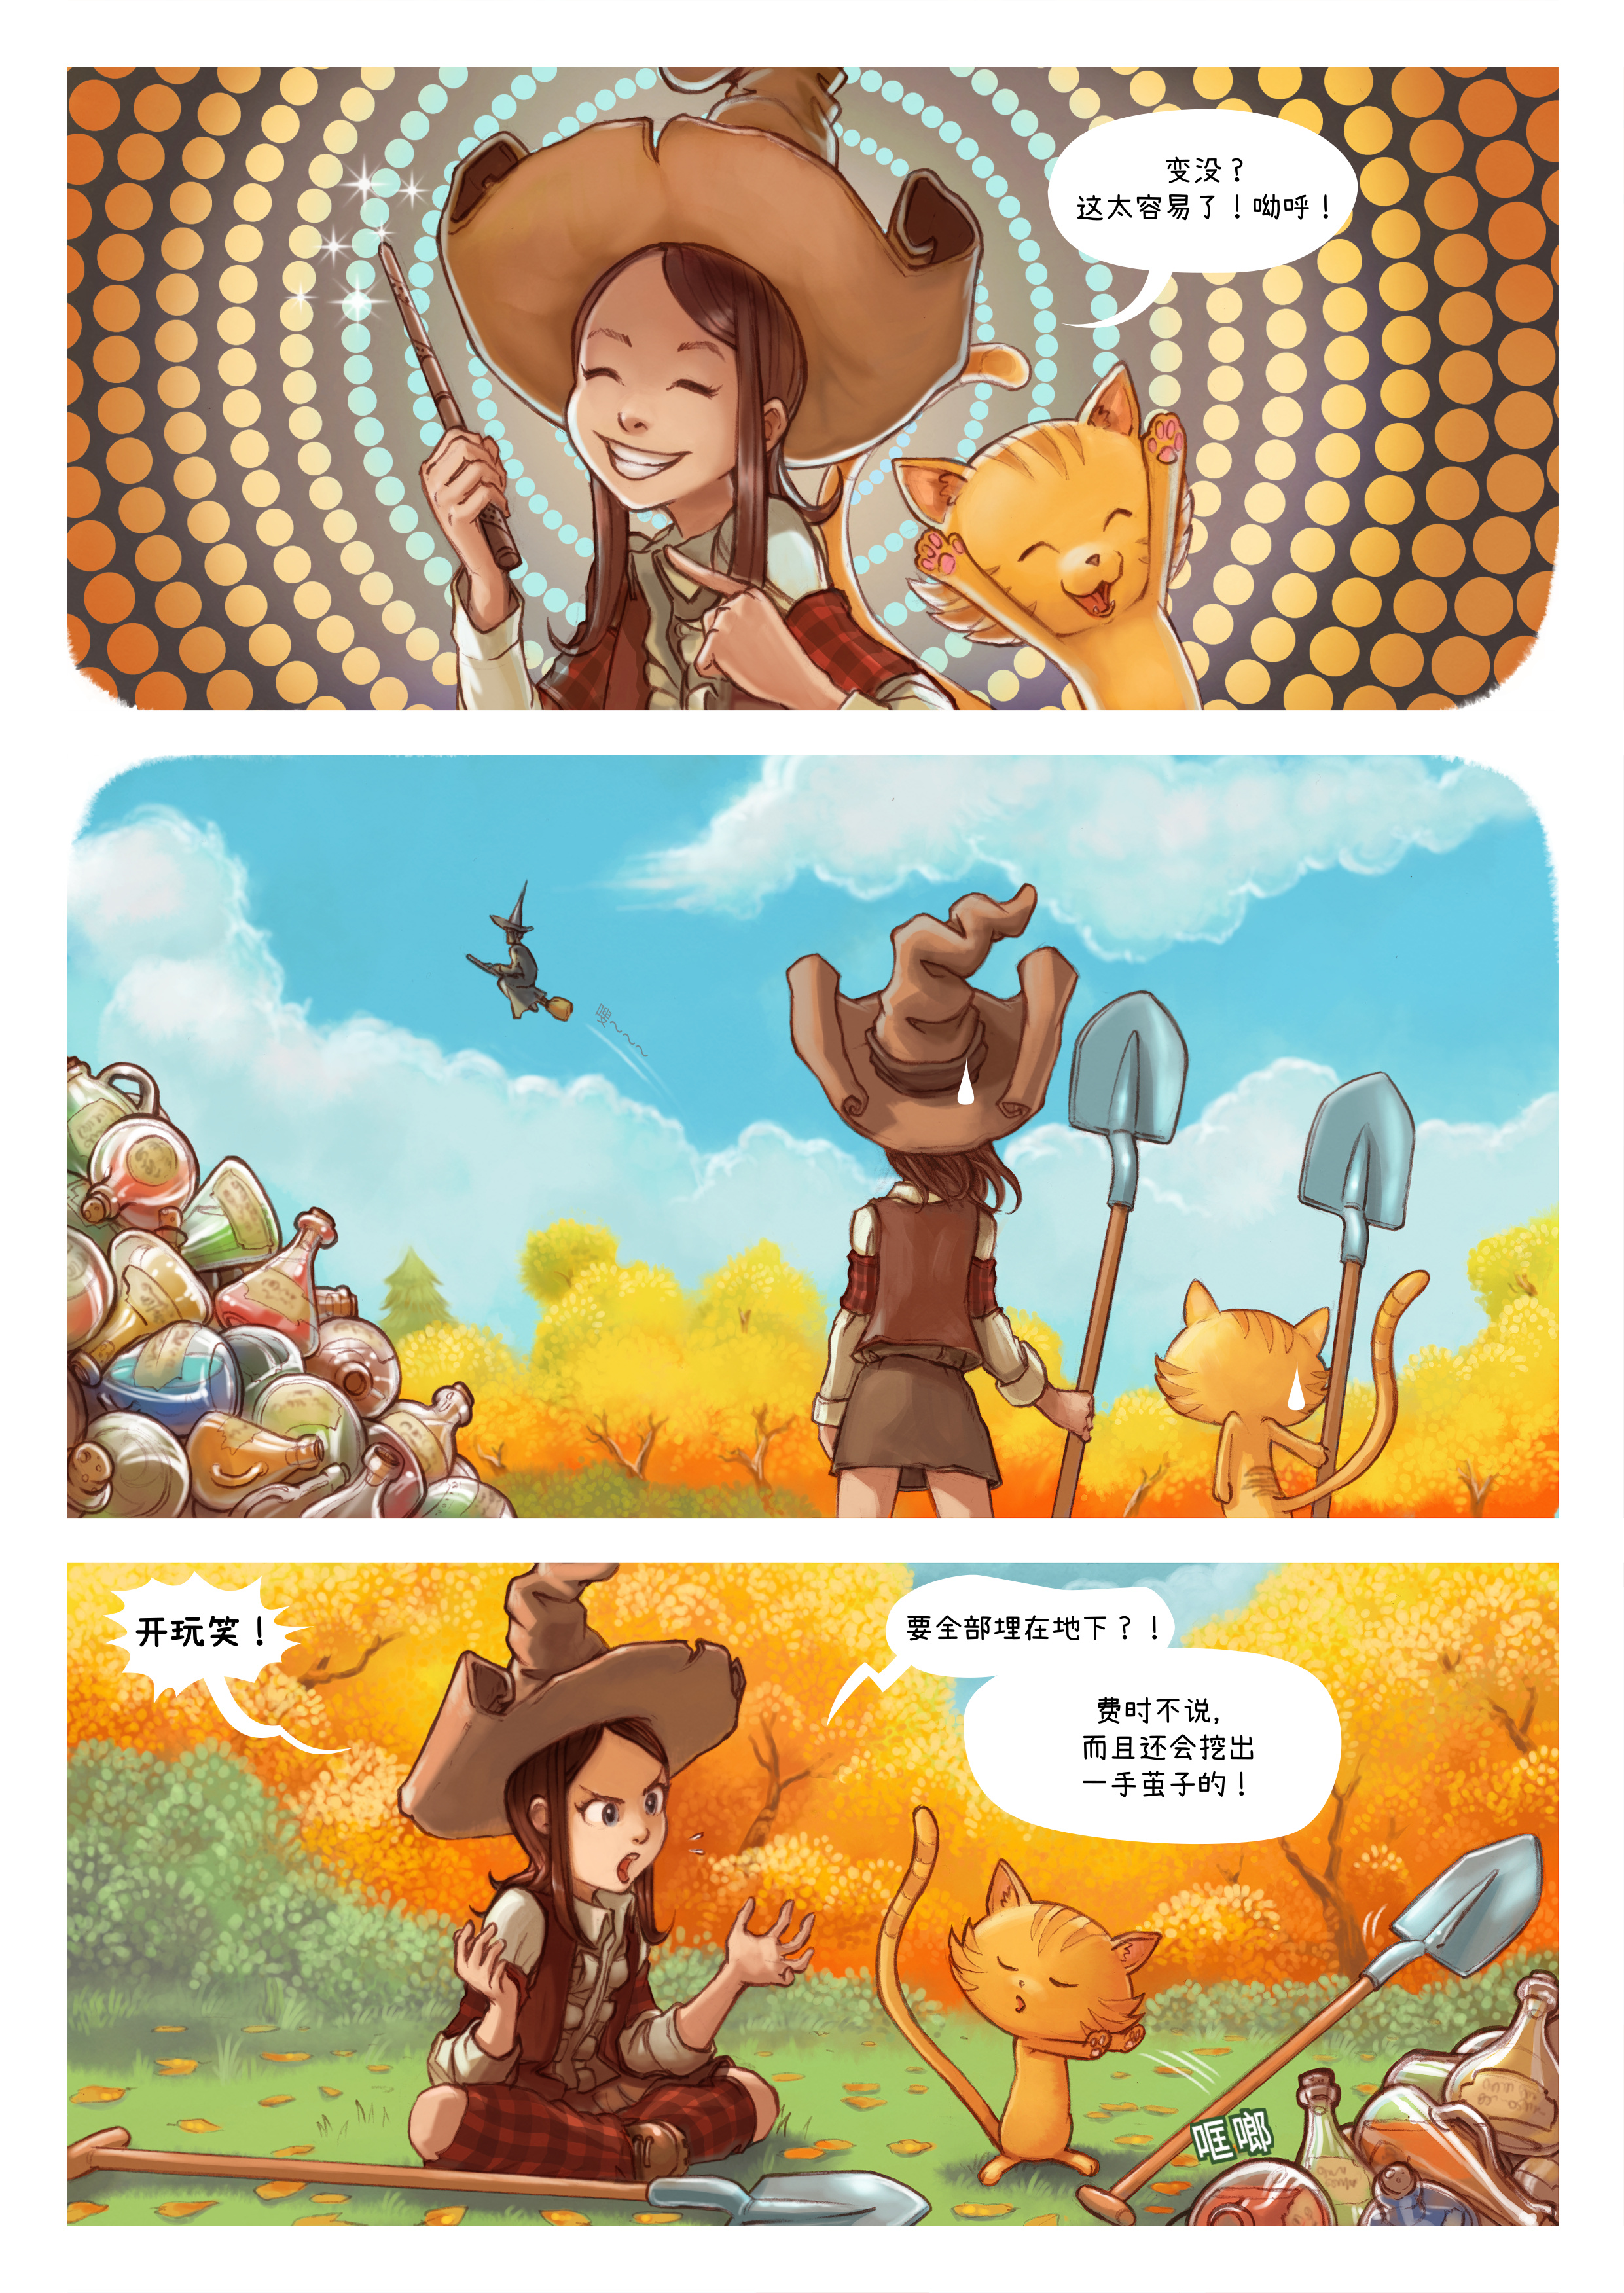 A webcomic page of Pepper&Carrot, 漫画全集 12 [cn], 页面 2